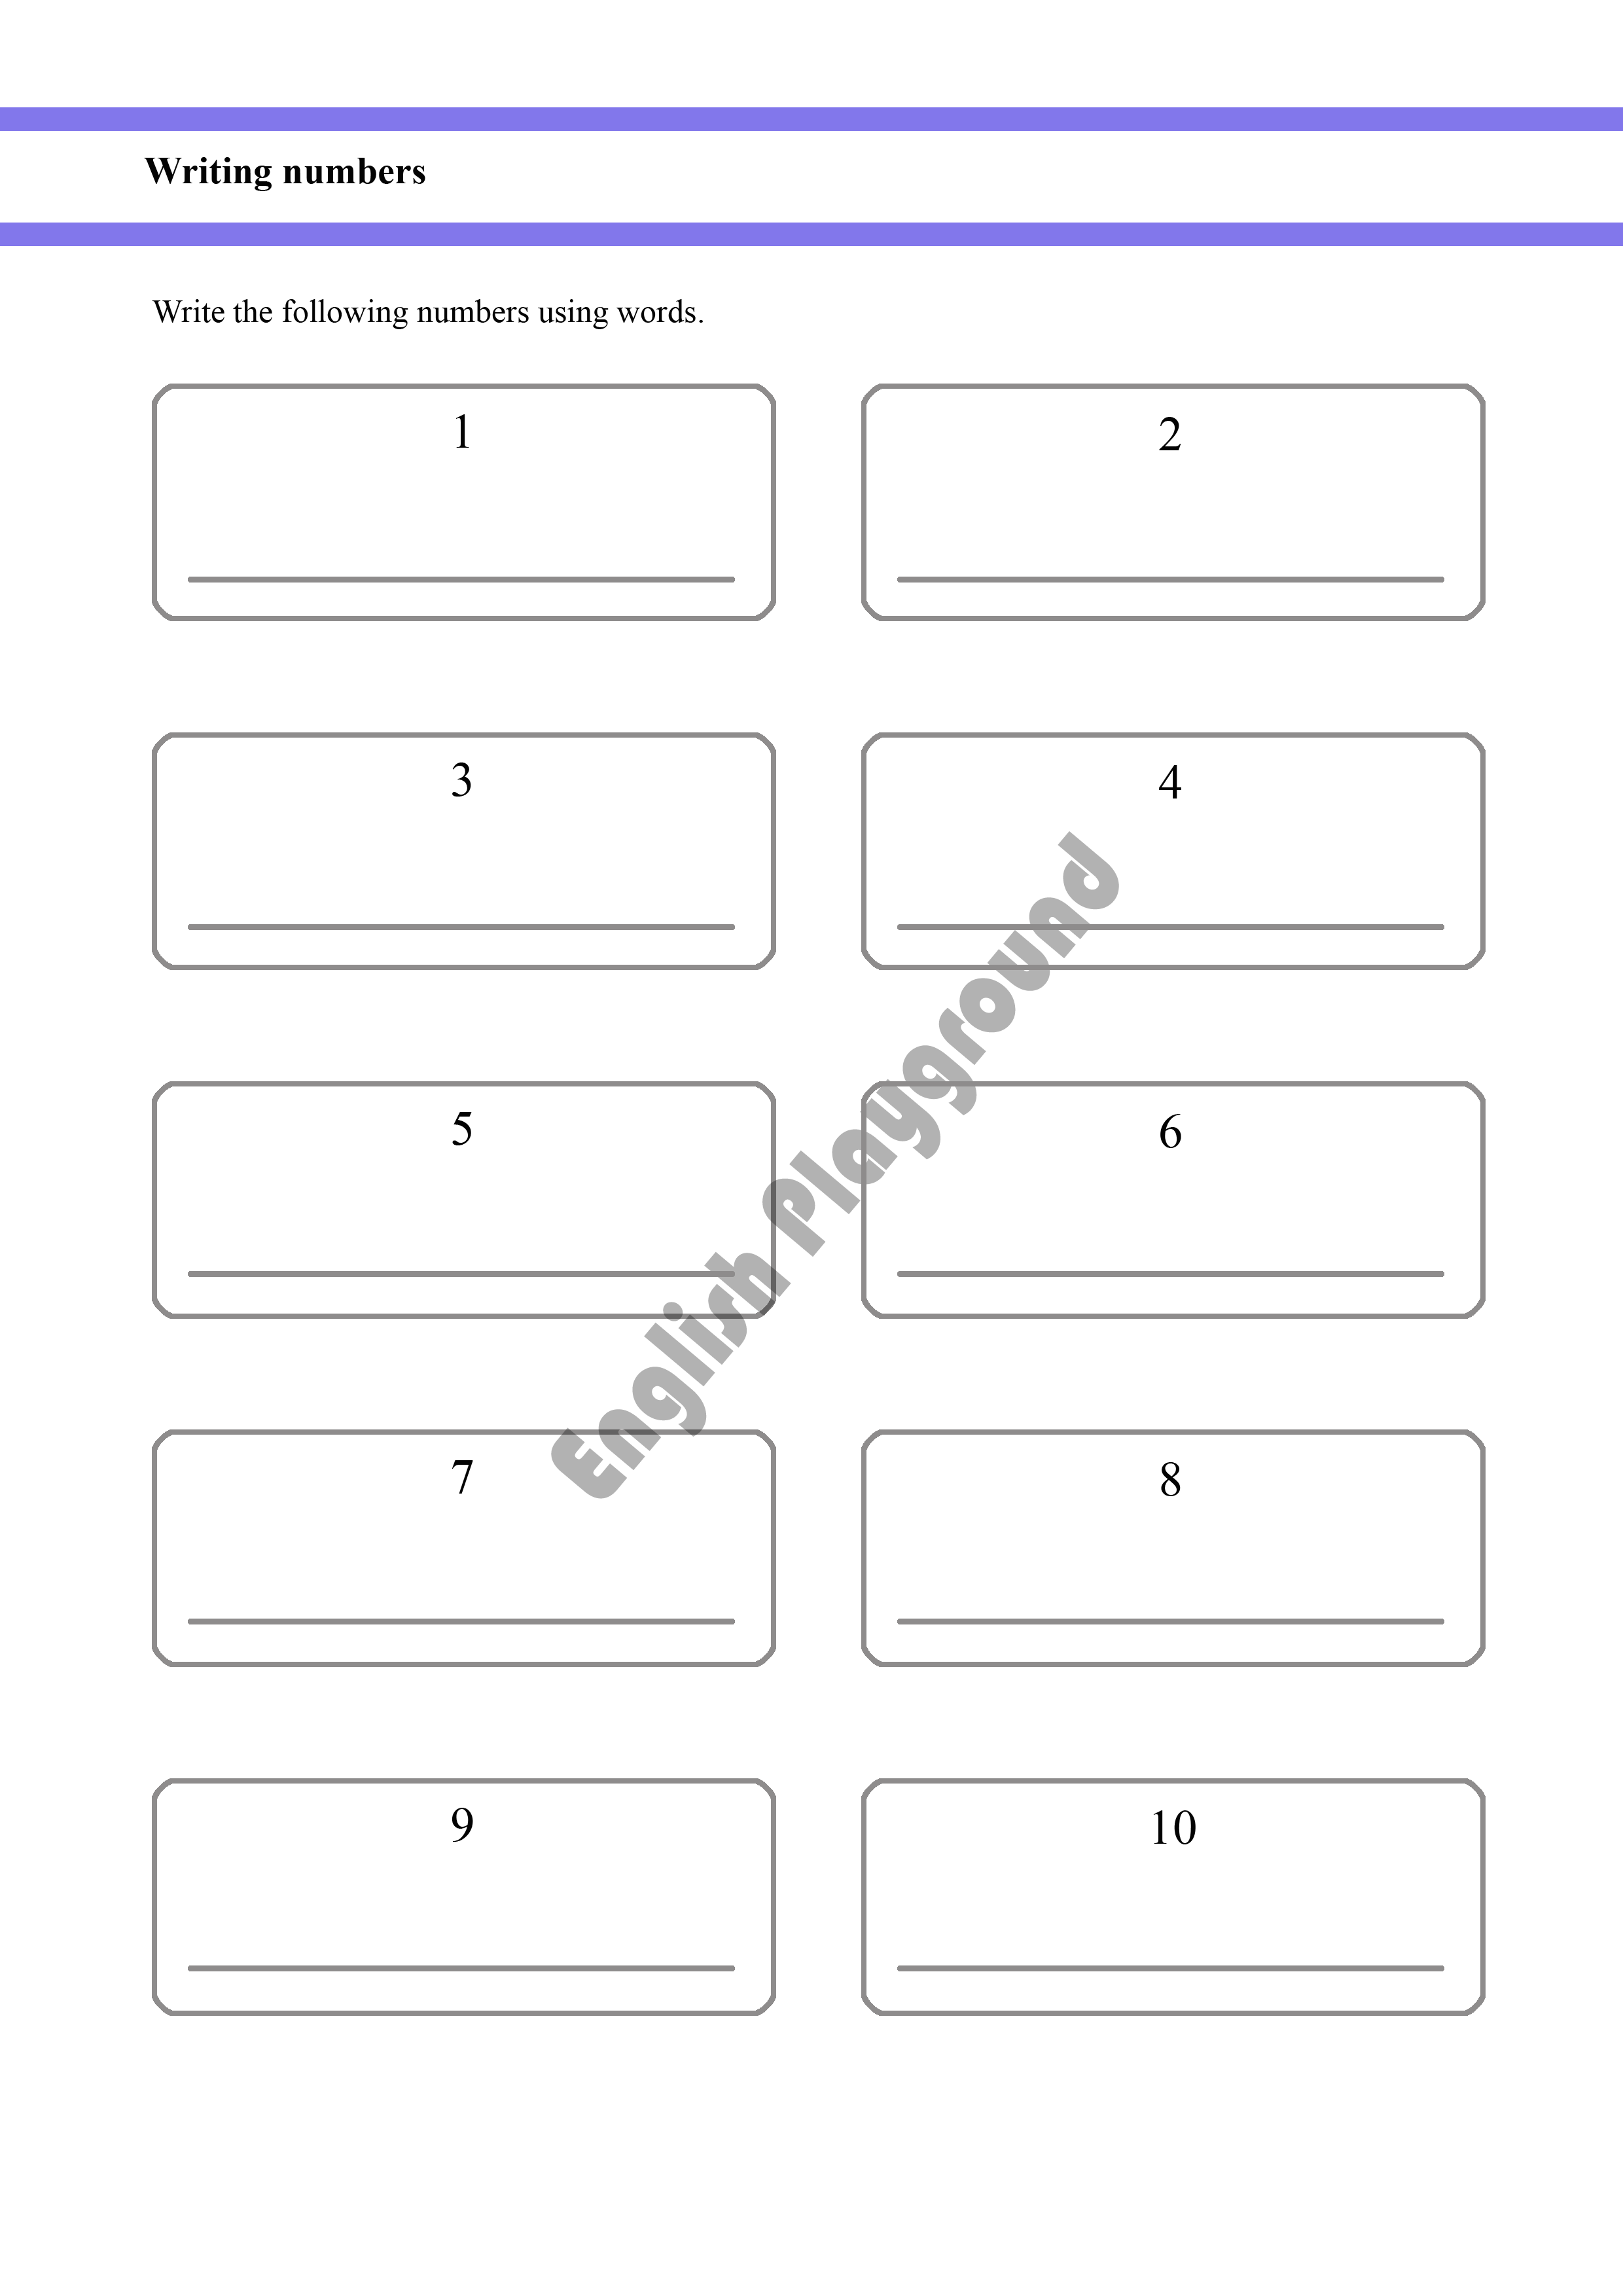 Written Numbers From 1 To 10 For Year 1 And Year 2